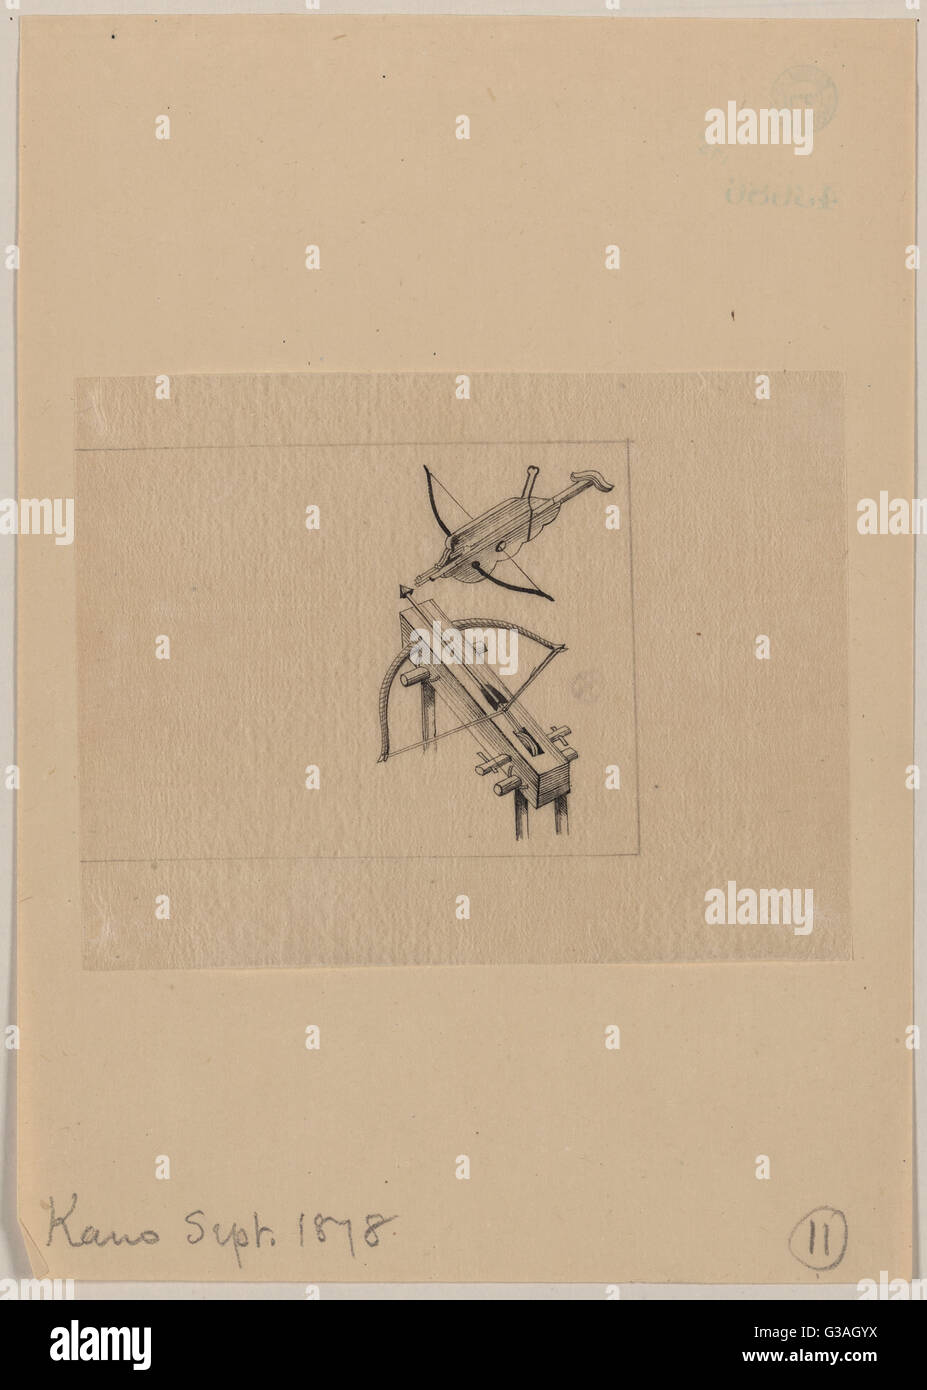 Two crossbow designs. Date 1878 Sept. - Stock Image